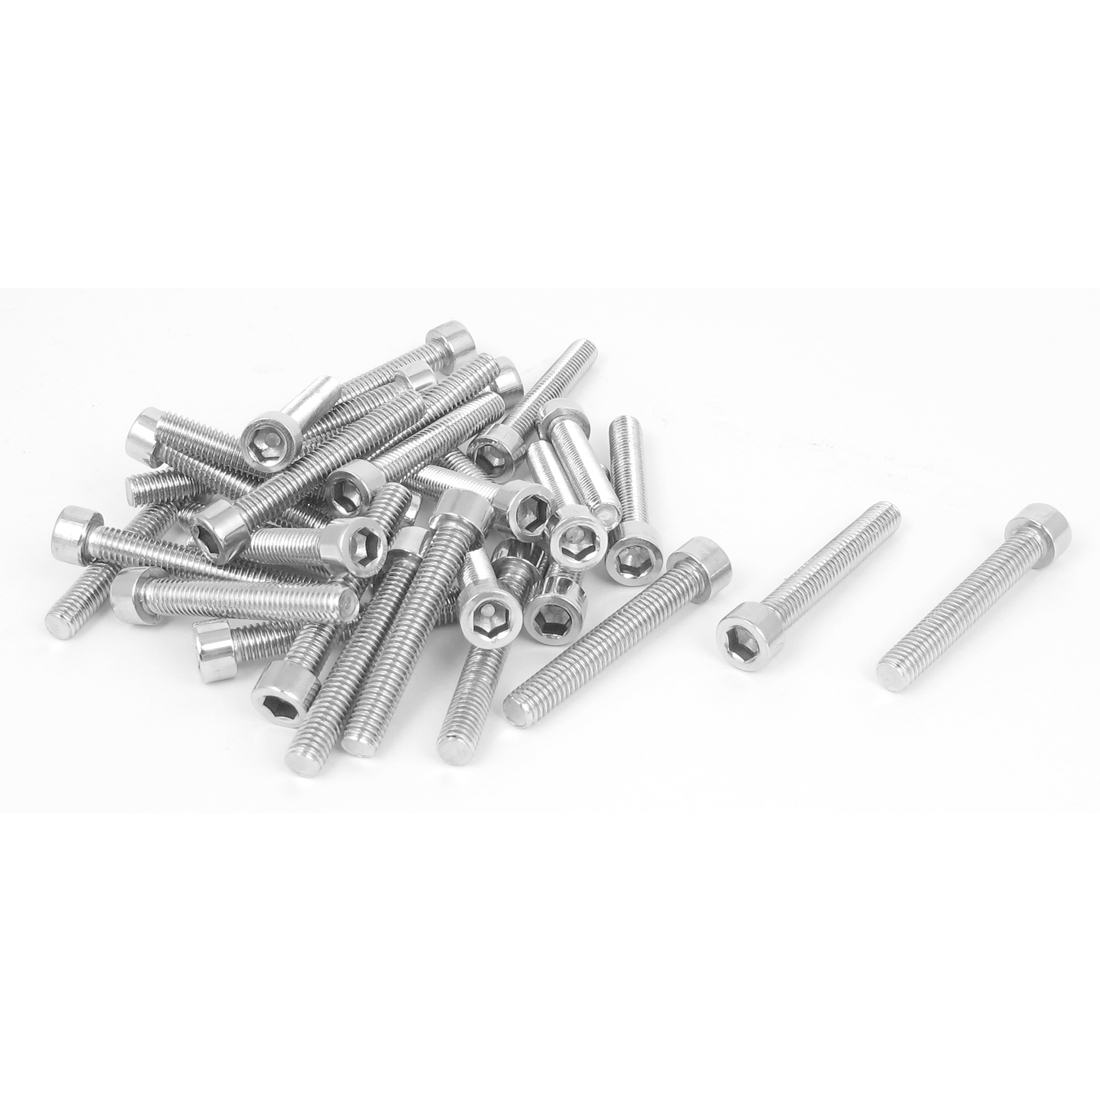 30 Pcs 45mm Long 6mmx40mm Stainless Steel Hex Socket Head Cap Screws 1.0mm Pitch